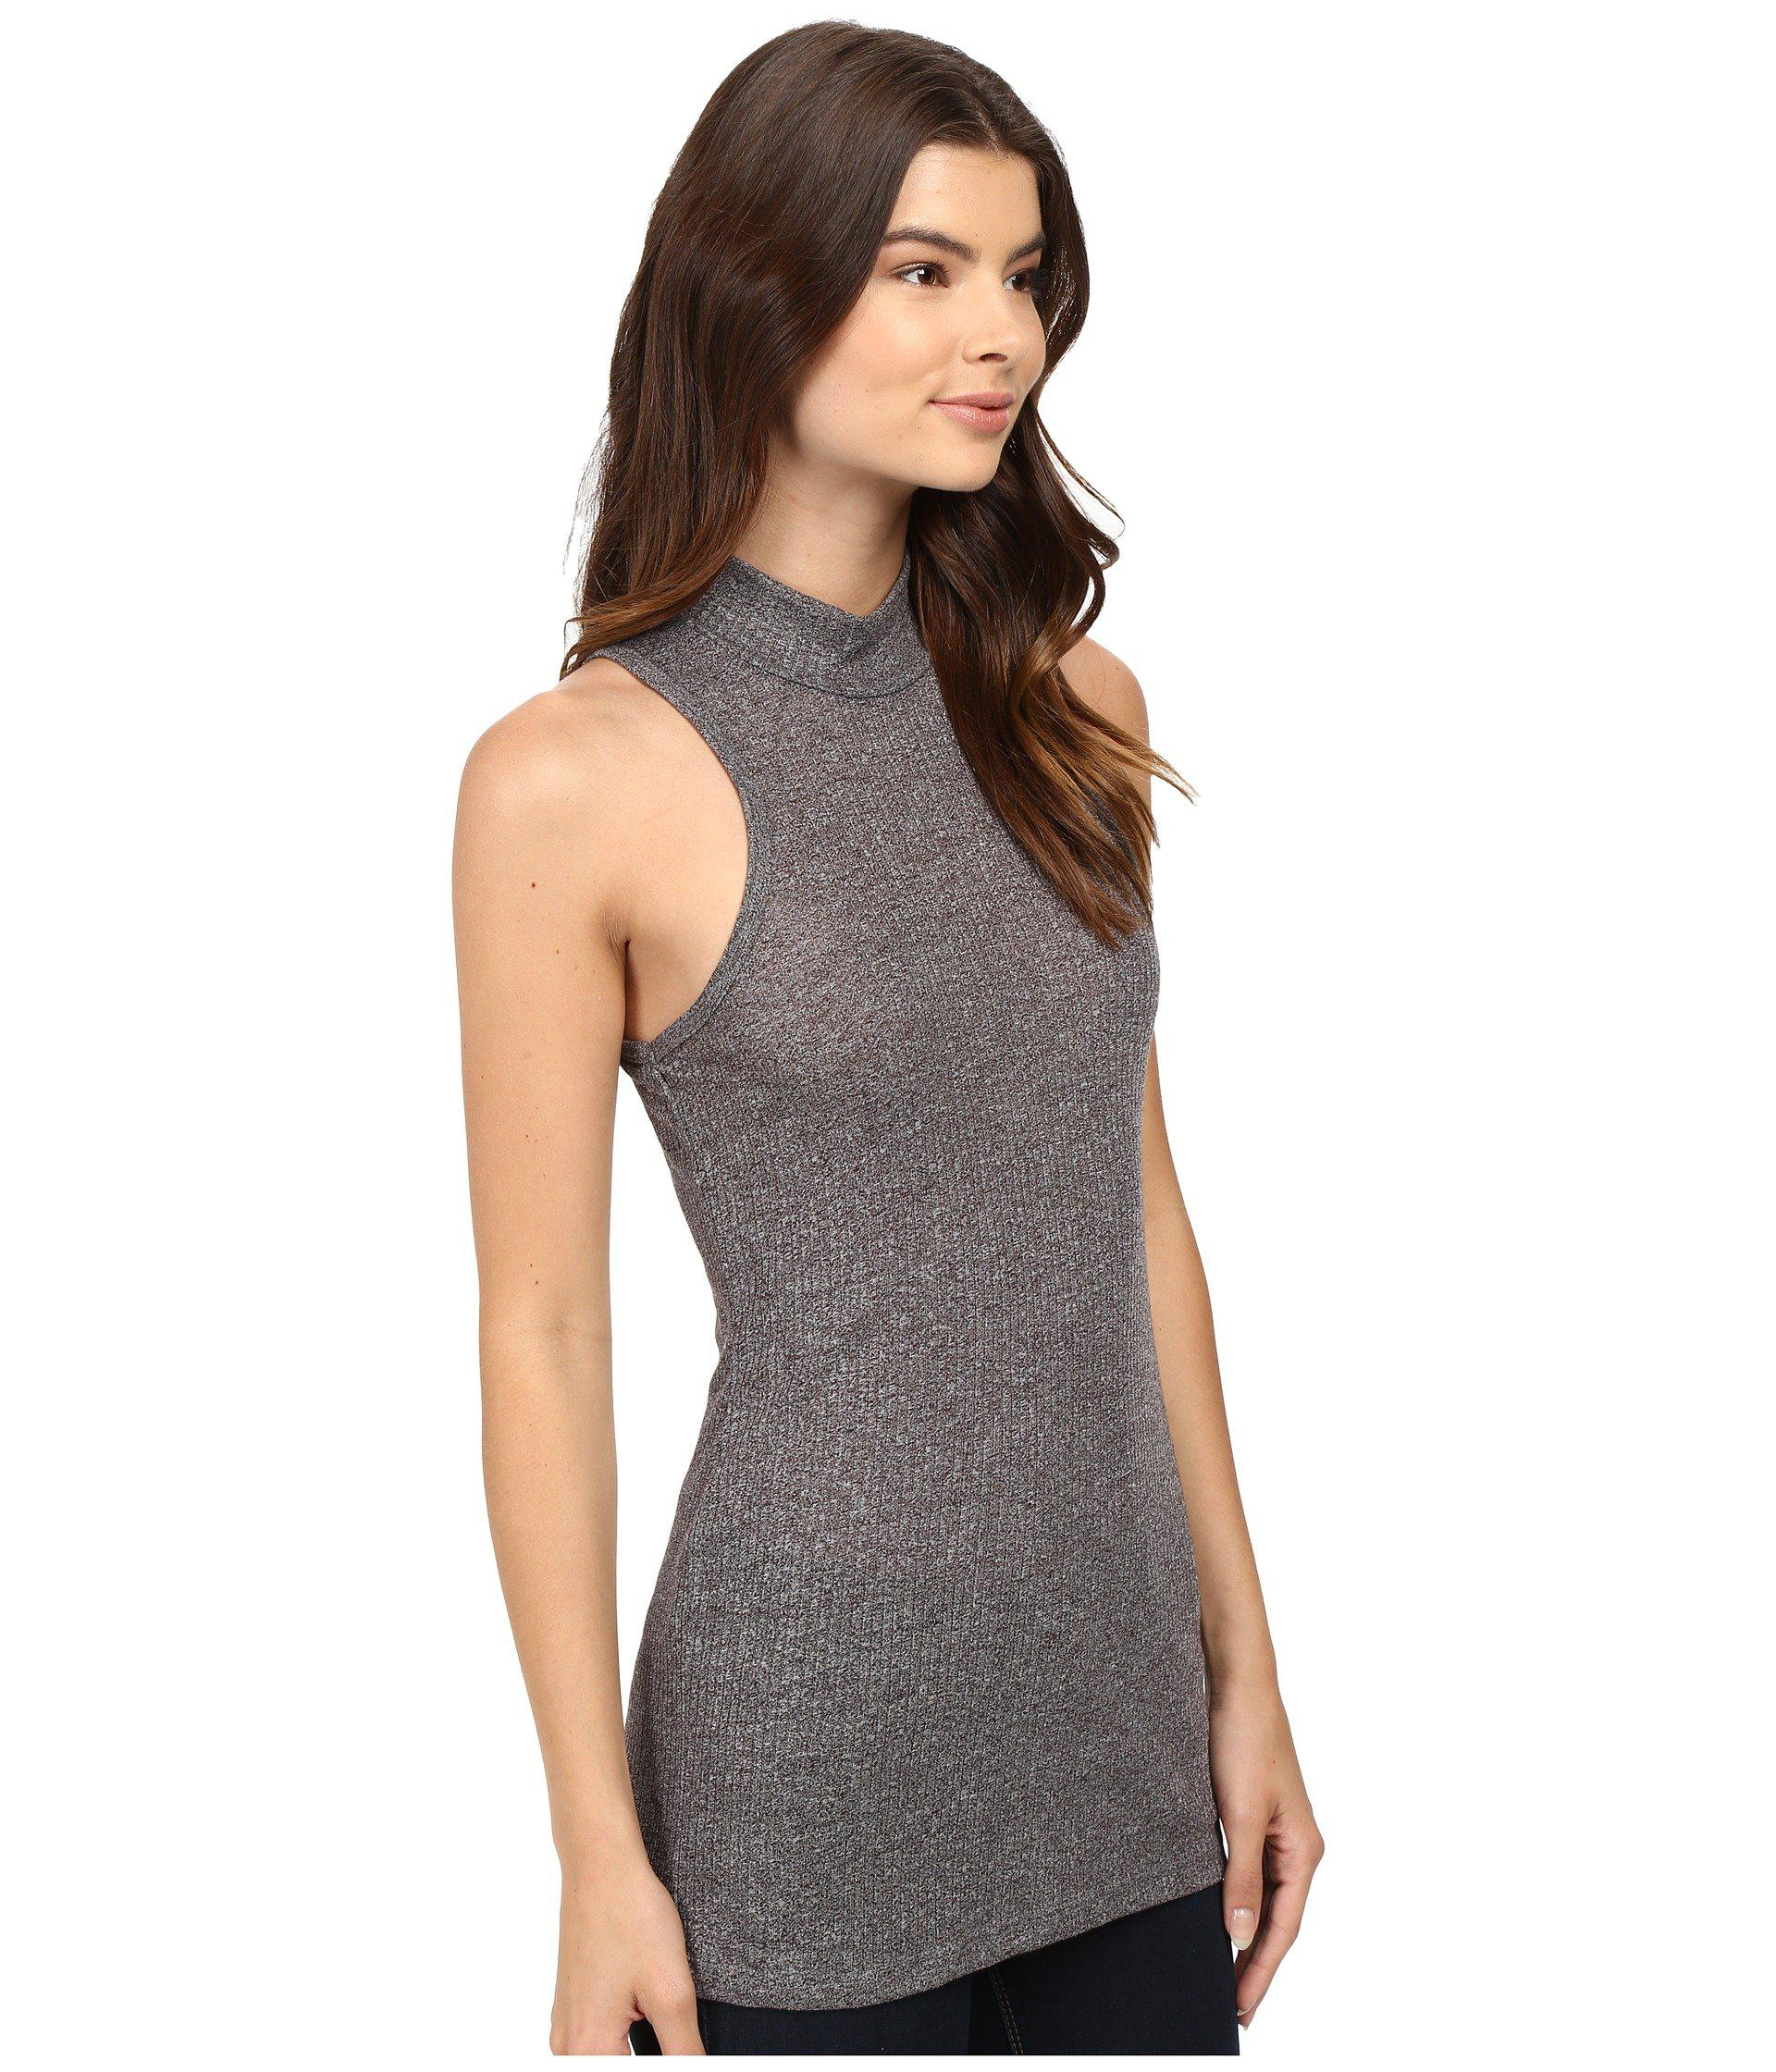 f725a77d91c Obey Westling Mock Neck Tank Top in Gray - Lyst